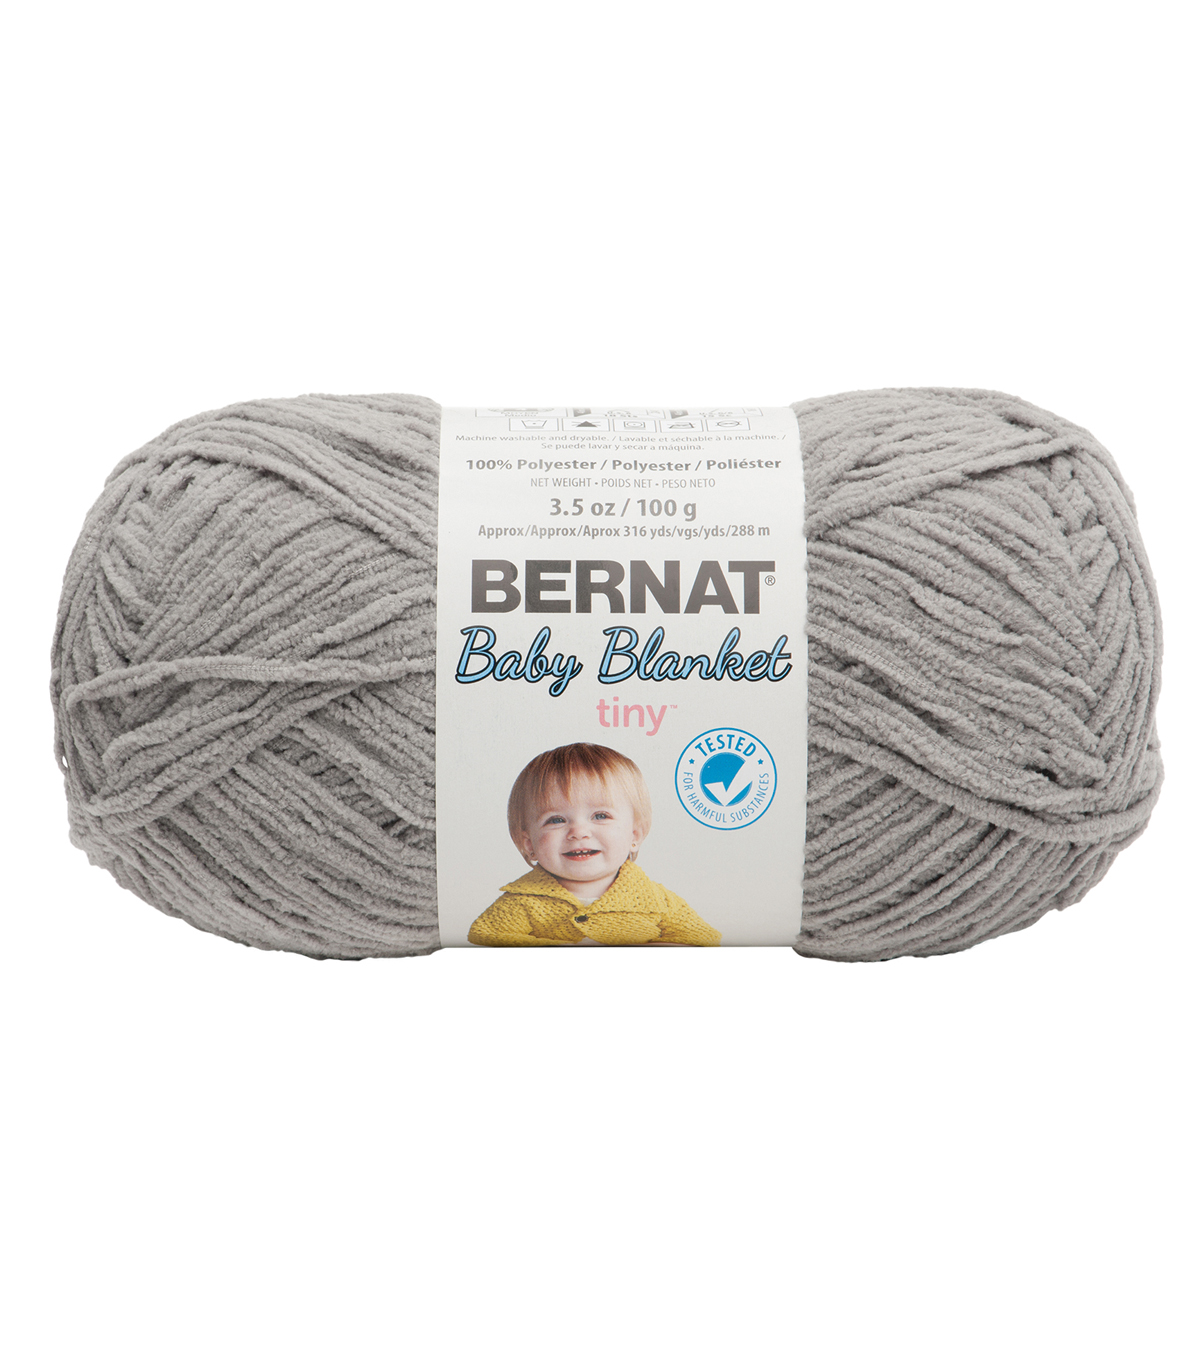 Bernat Baby Blanket Tiny Yarn